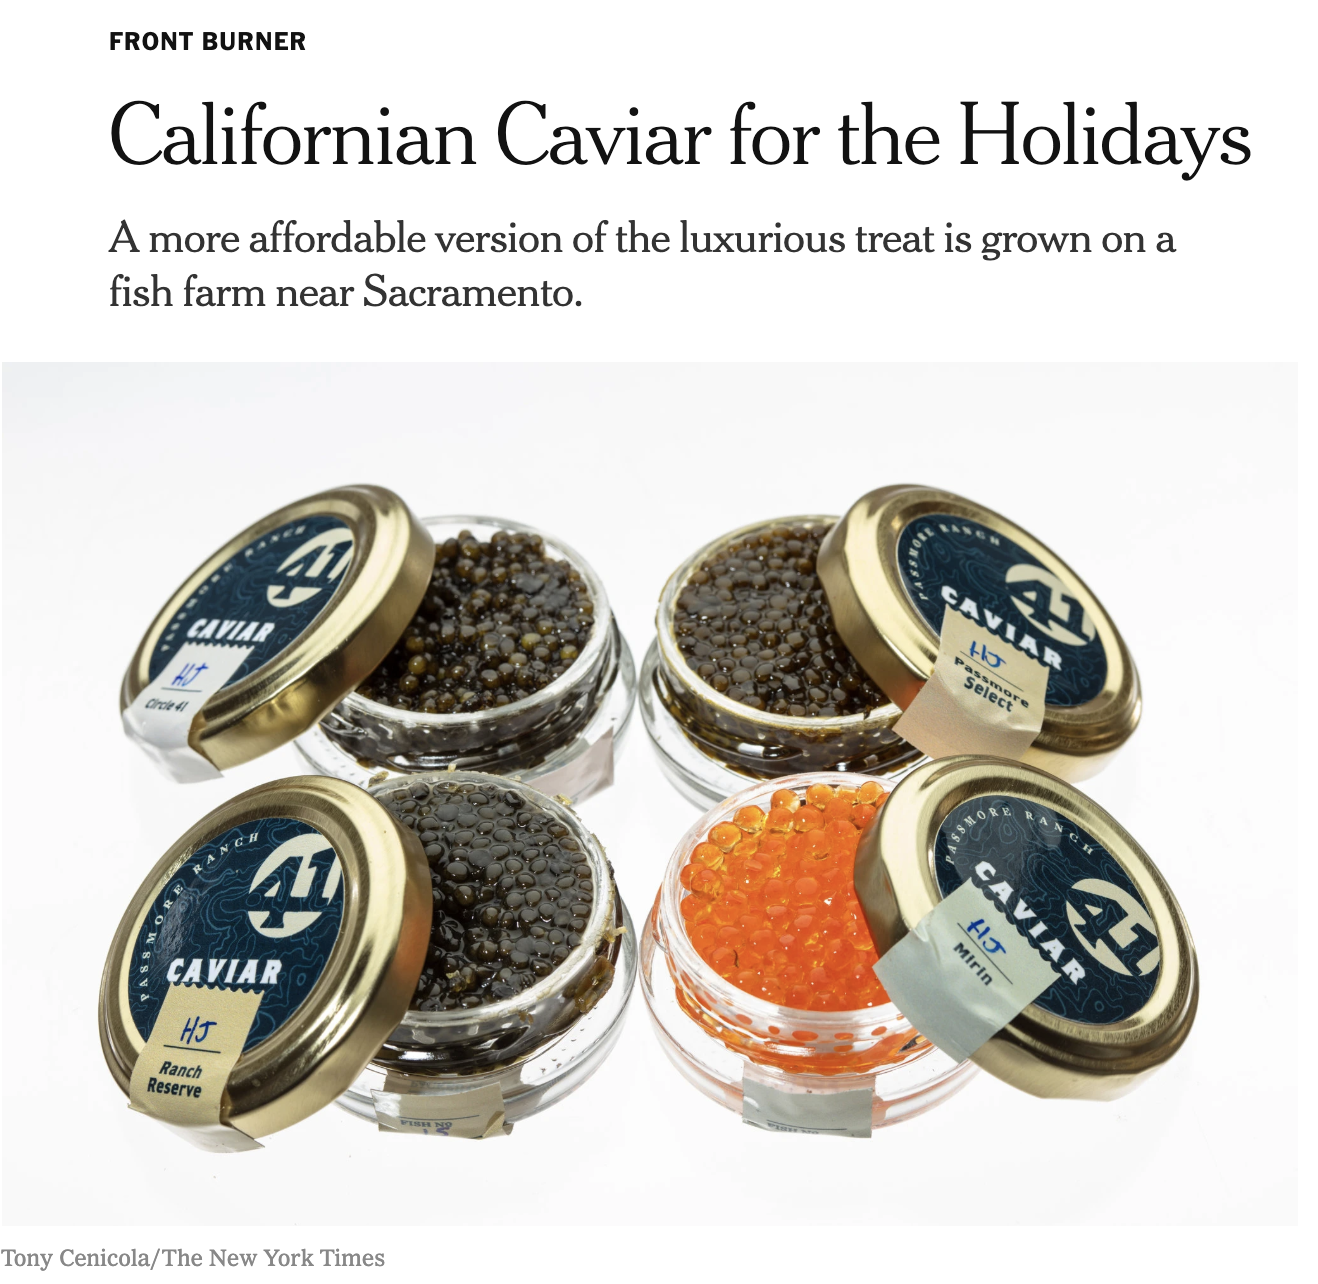 The New York Times - Passmore Ranch Caviar featured in Florence Fabricant's Front Burner for the holidays in 2018.